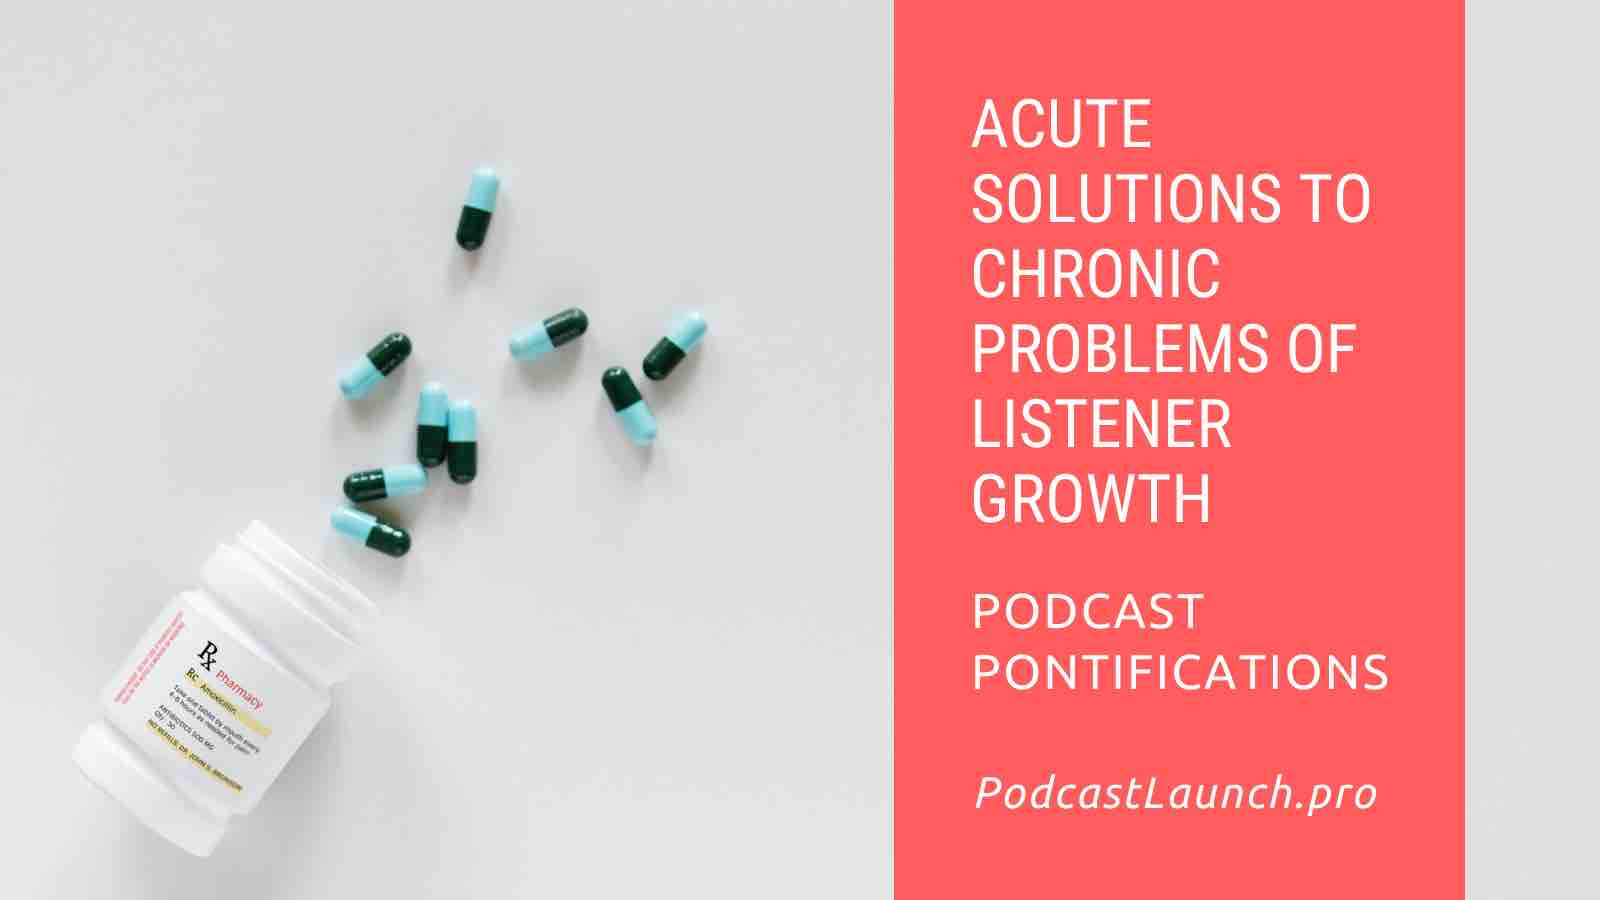 Acute Solutions to Chronic Problems of Podcast Growth